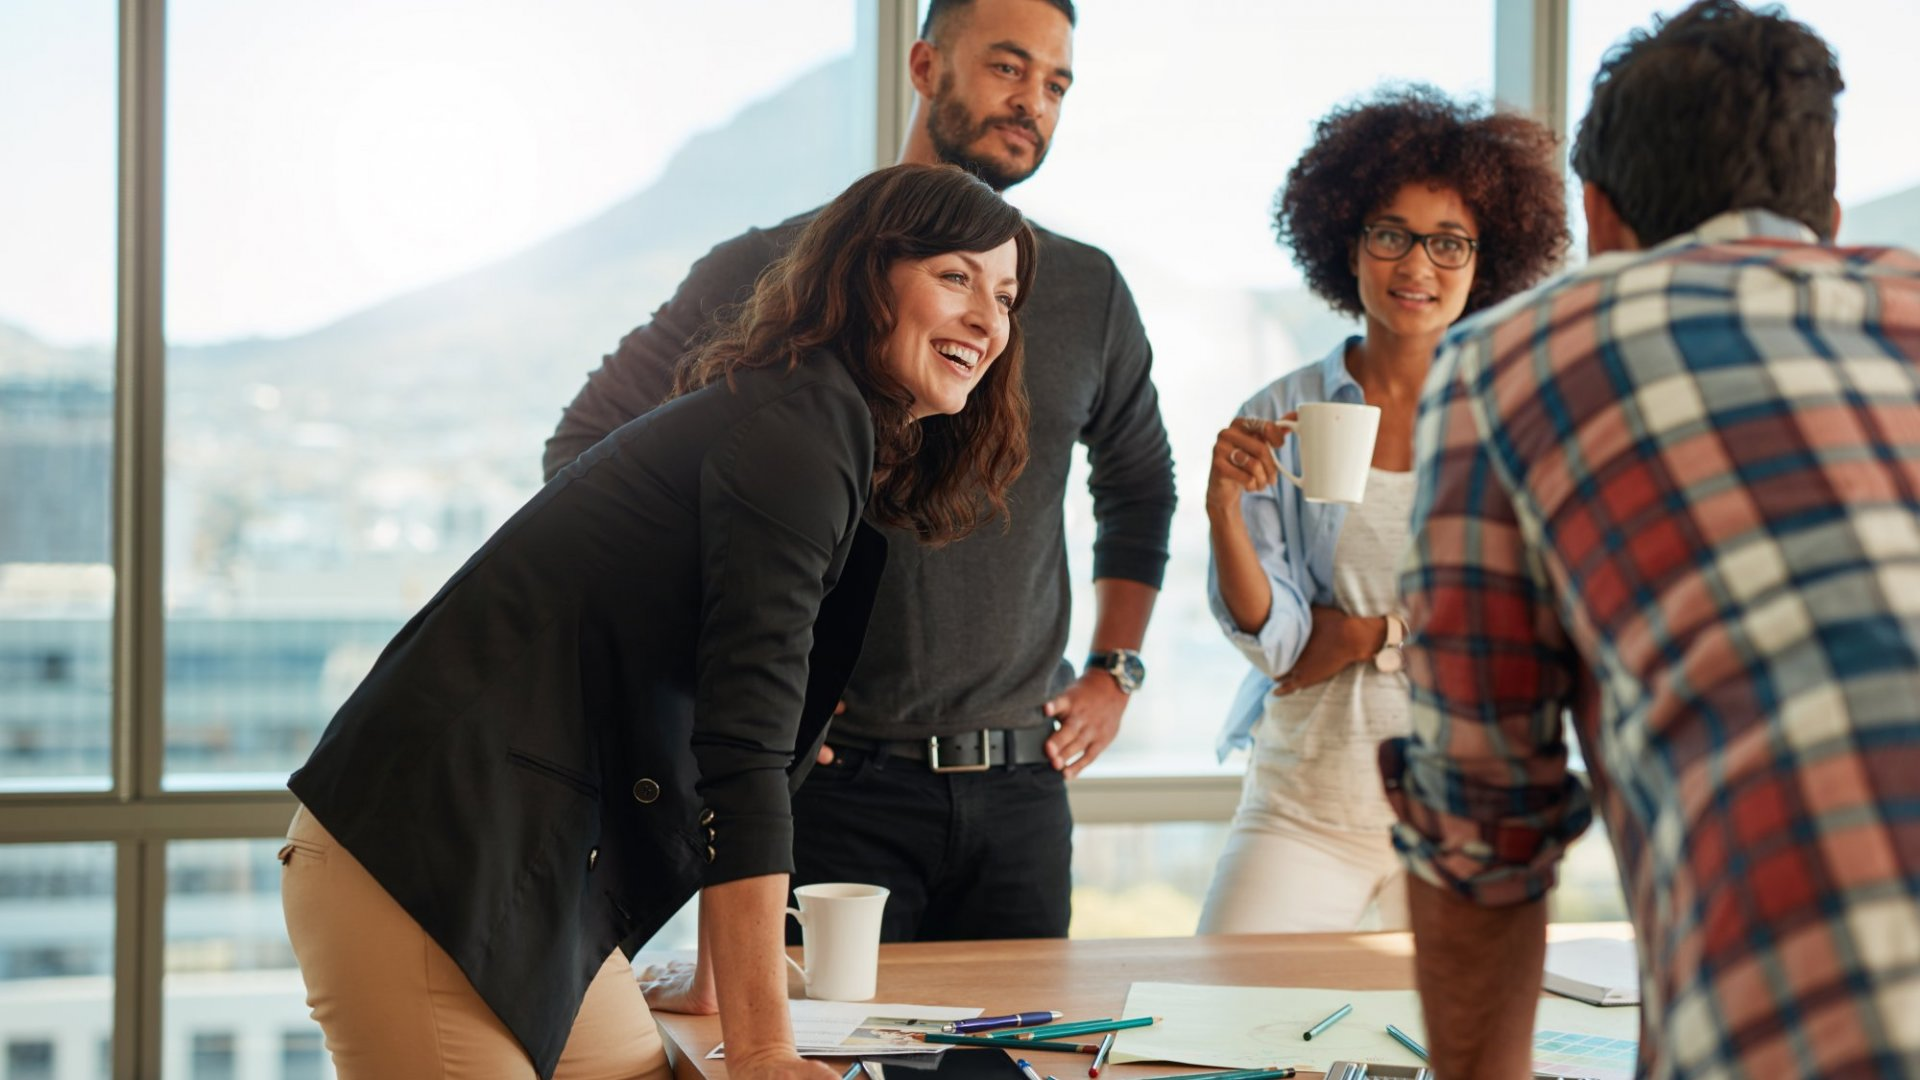 3 Elements of Building a Happier Workplace